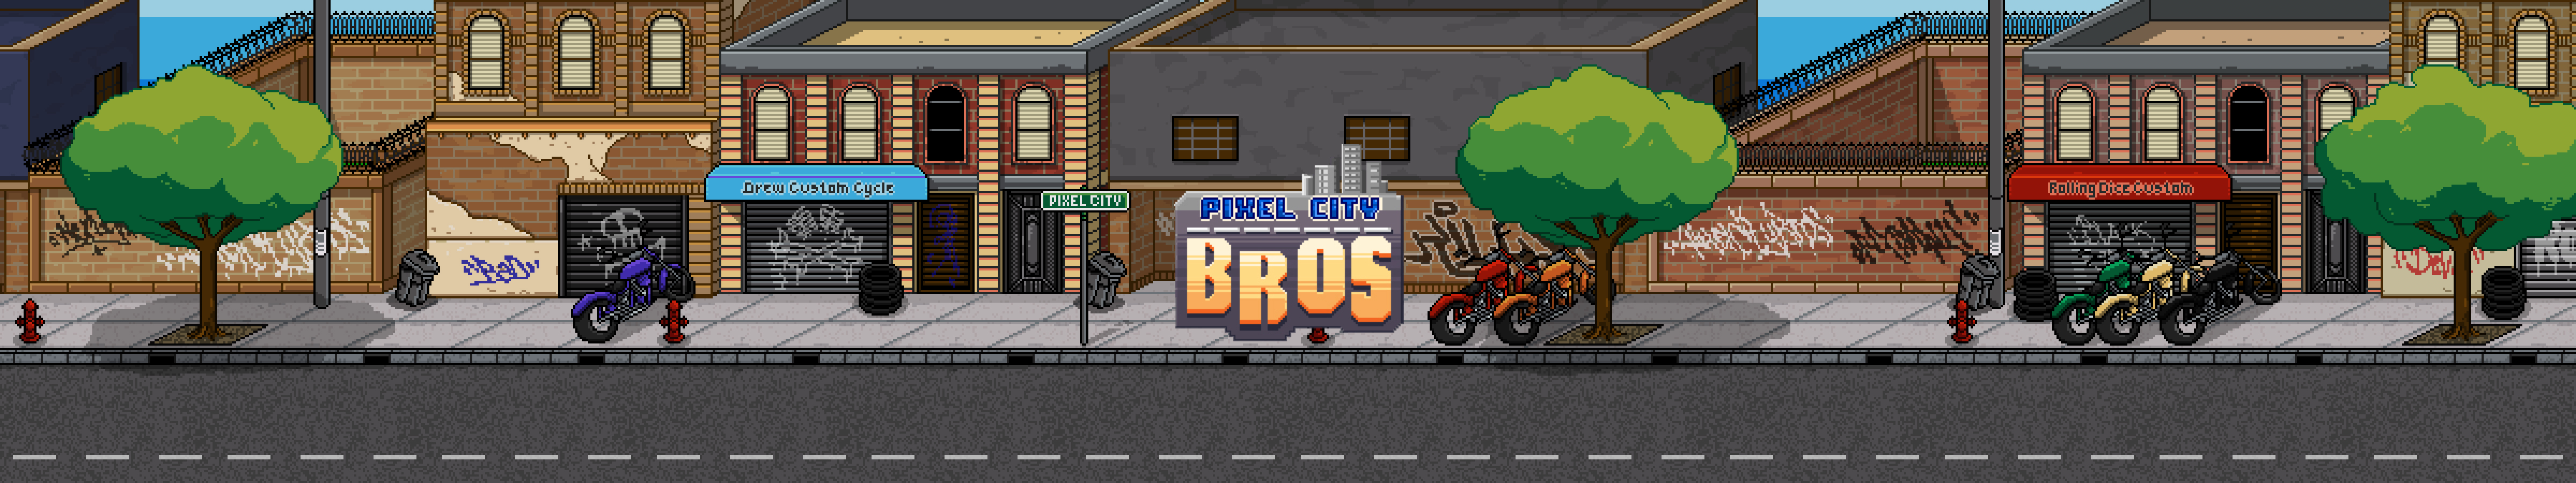 Pixel City Bros